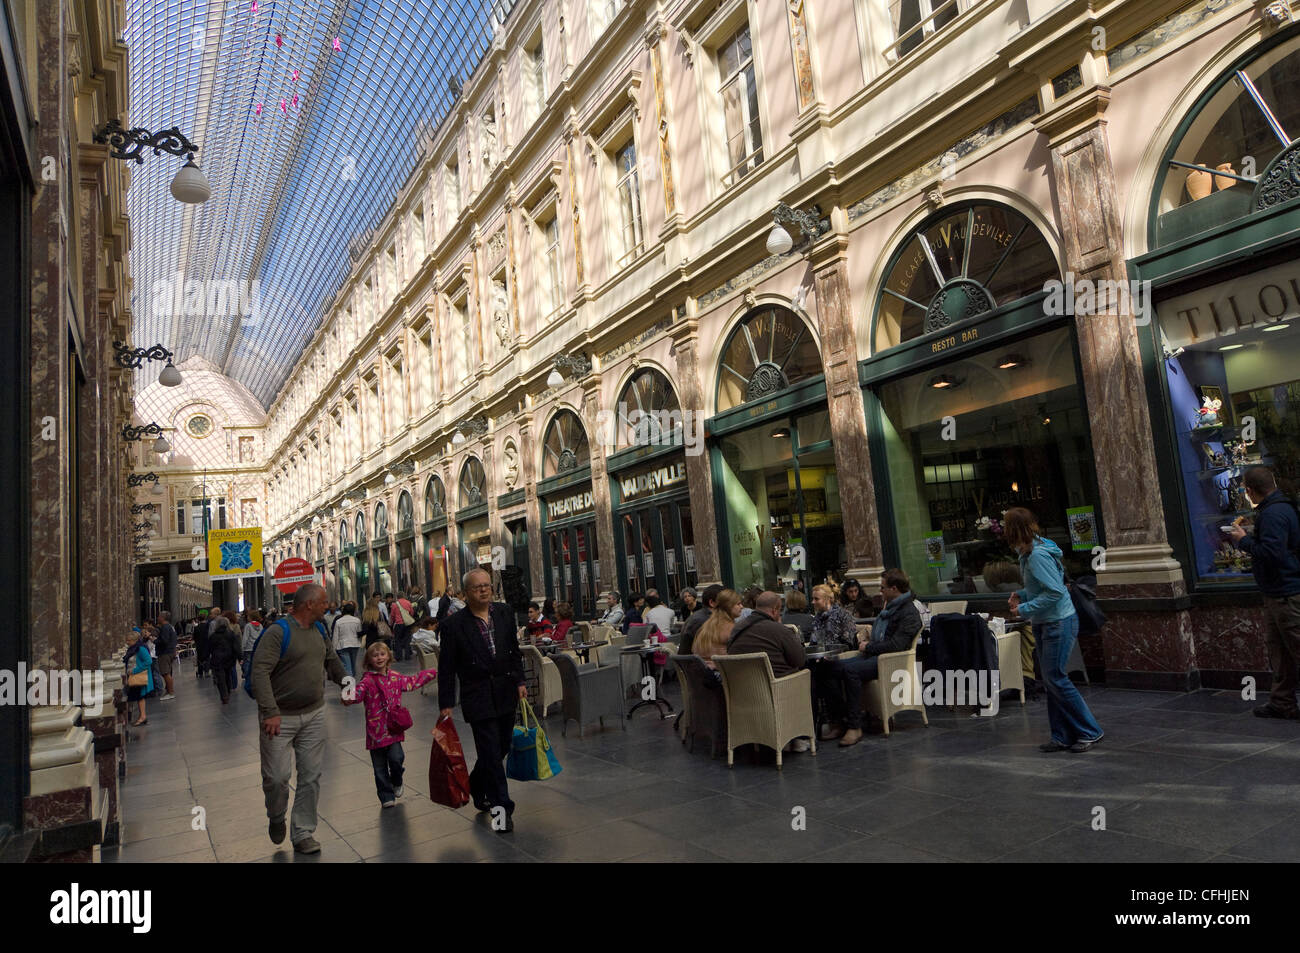 Horizontal wide angle inside the amazing covered arcade of the Galeries Royal St Hubert in central Brussels, Belgium Stock Photo